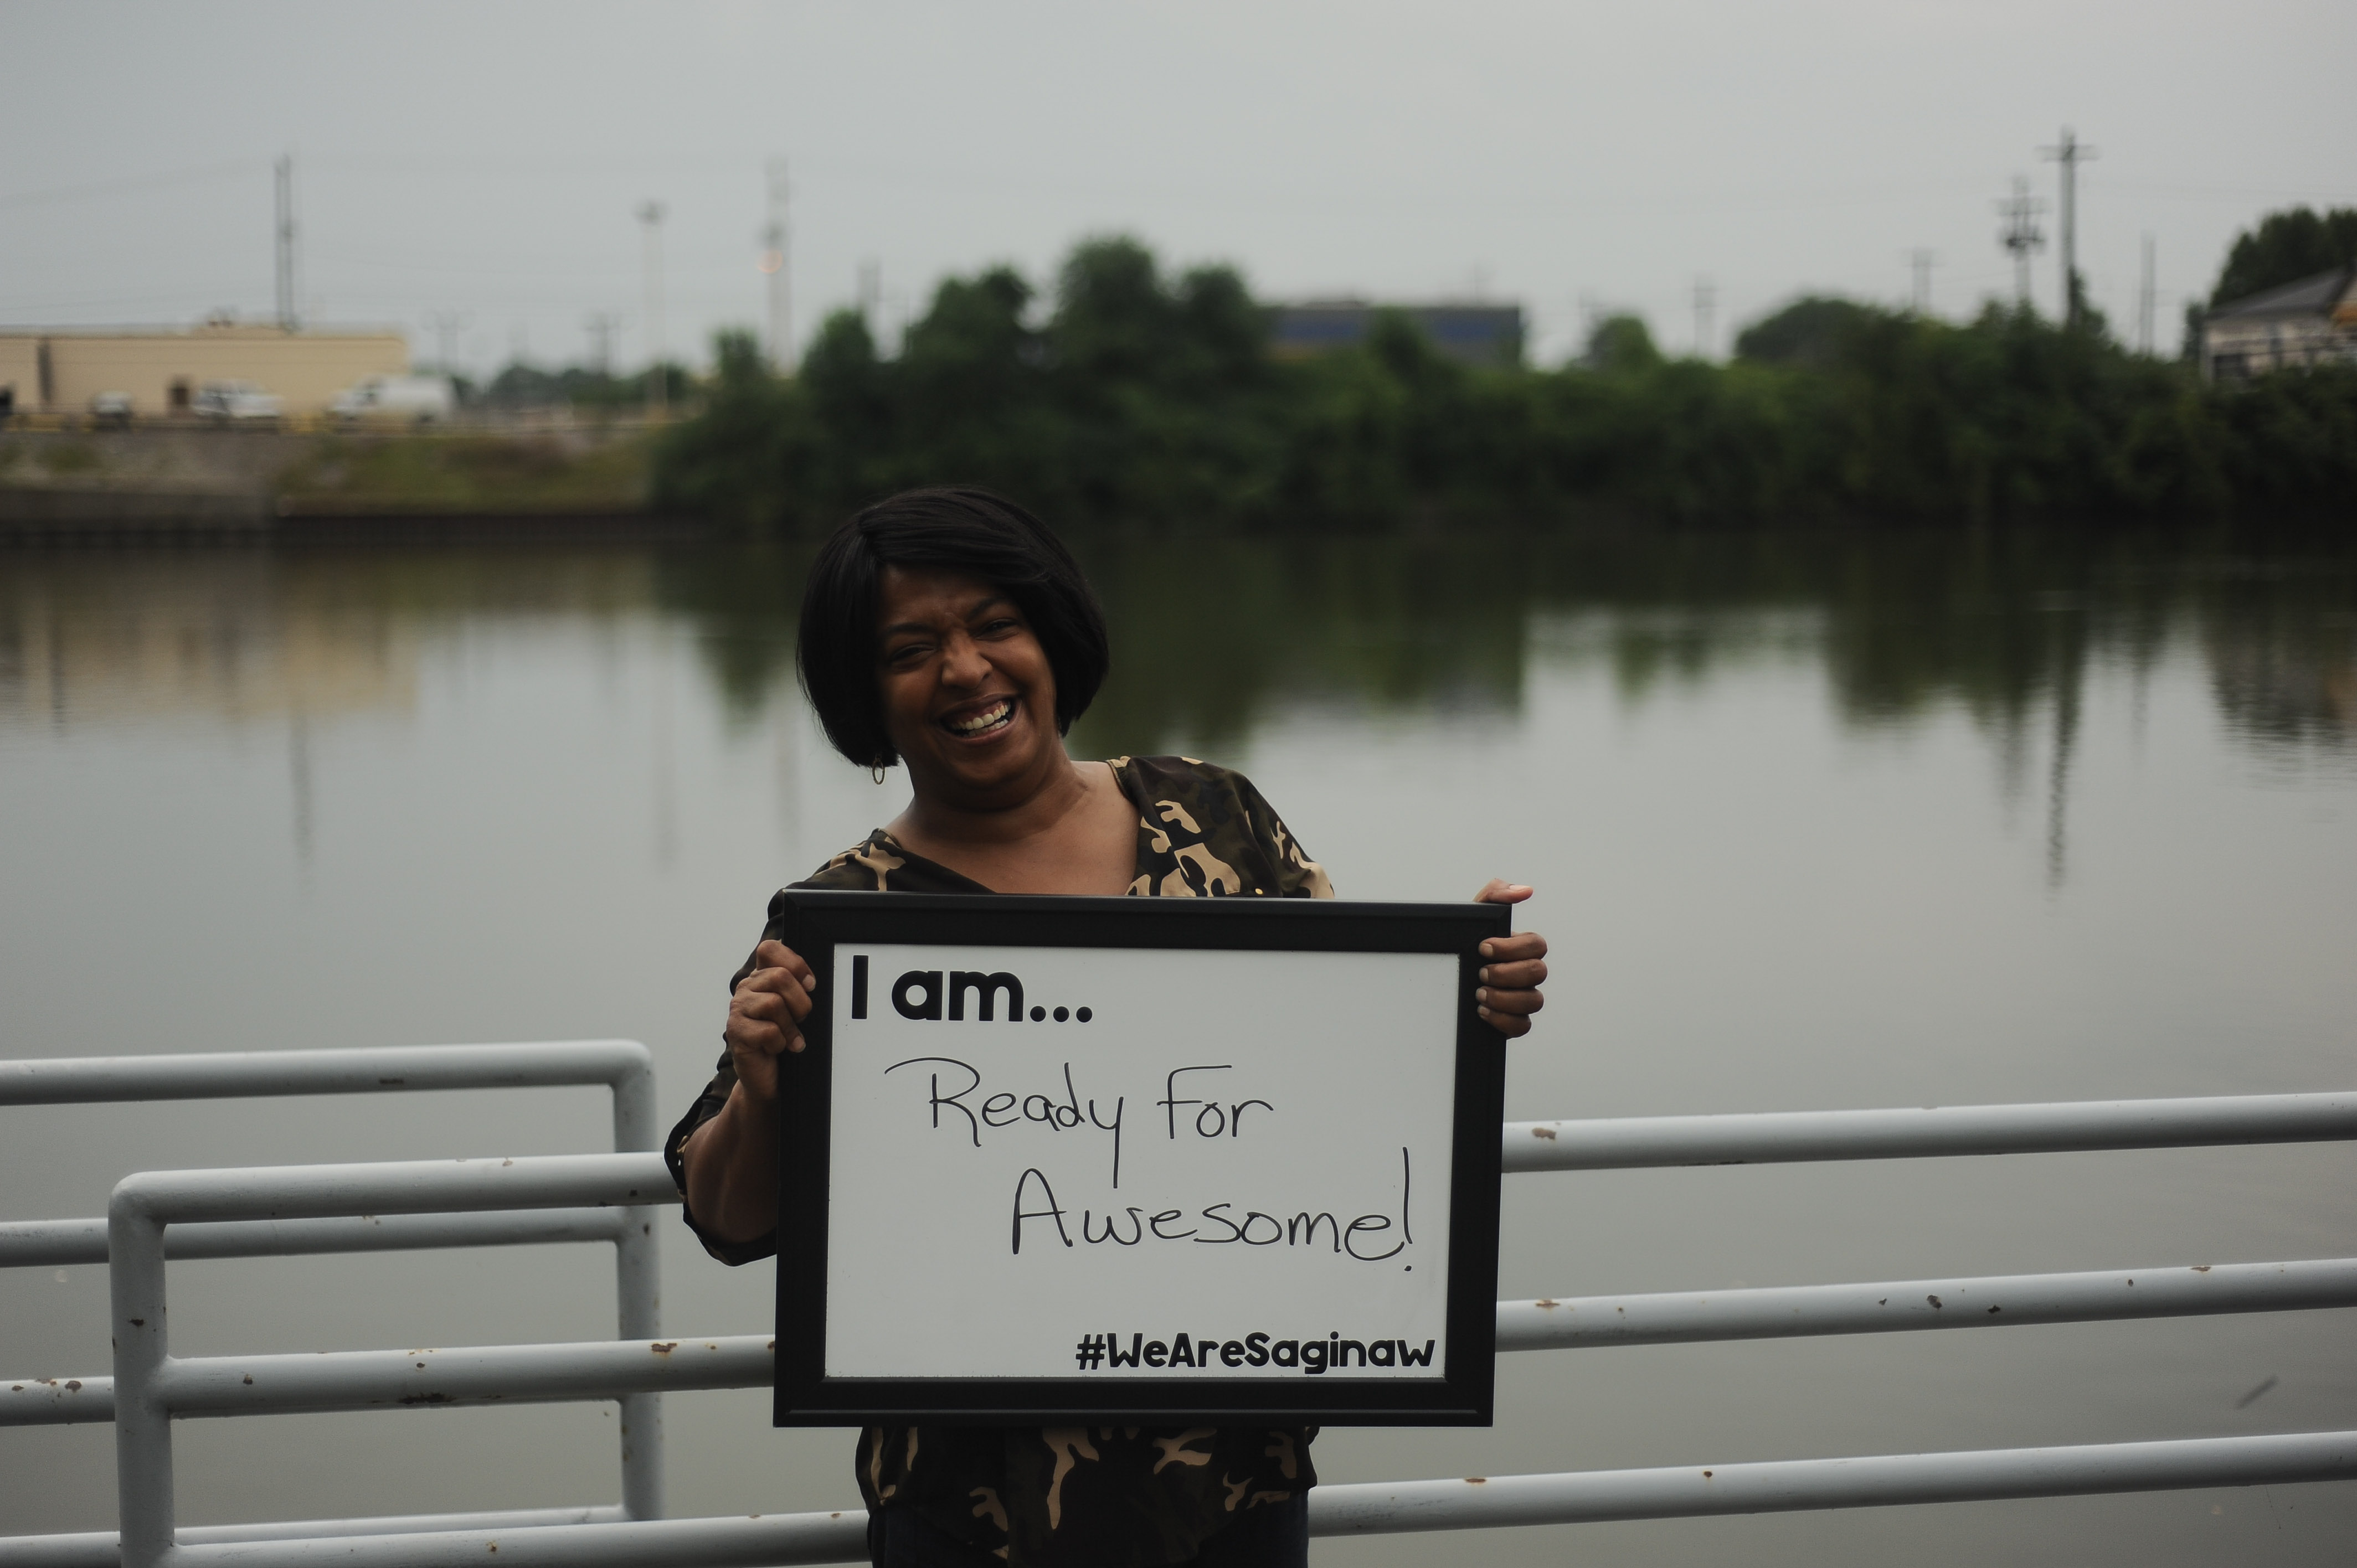 I AM… Ready for Awesome